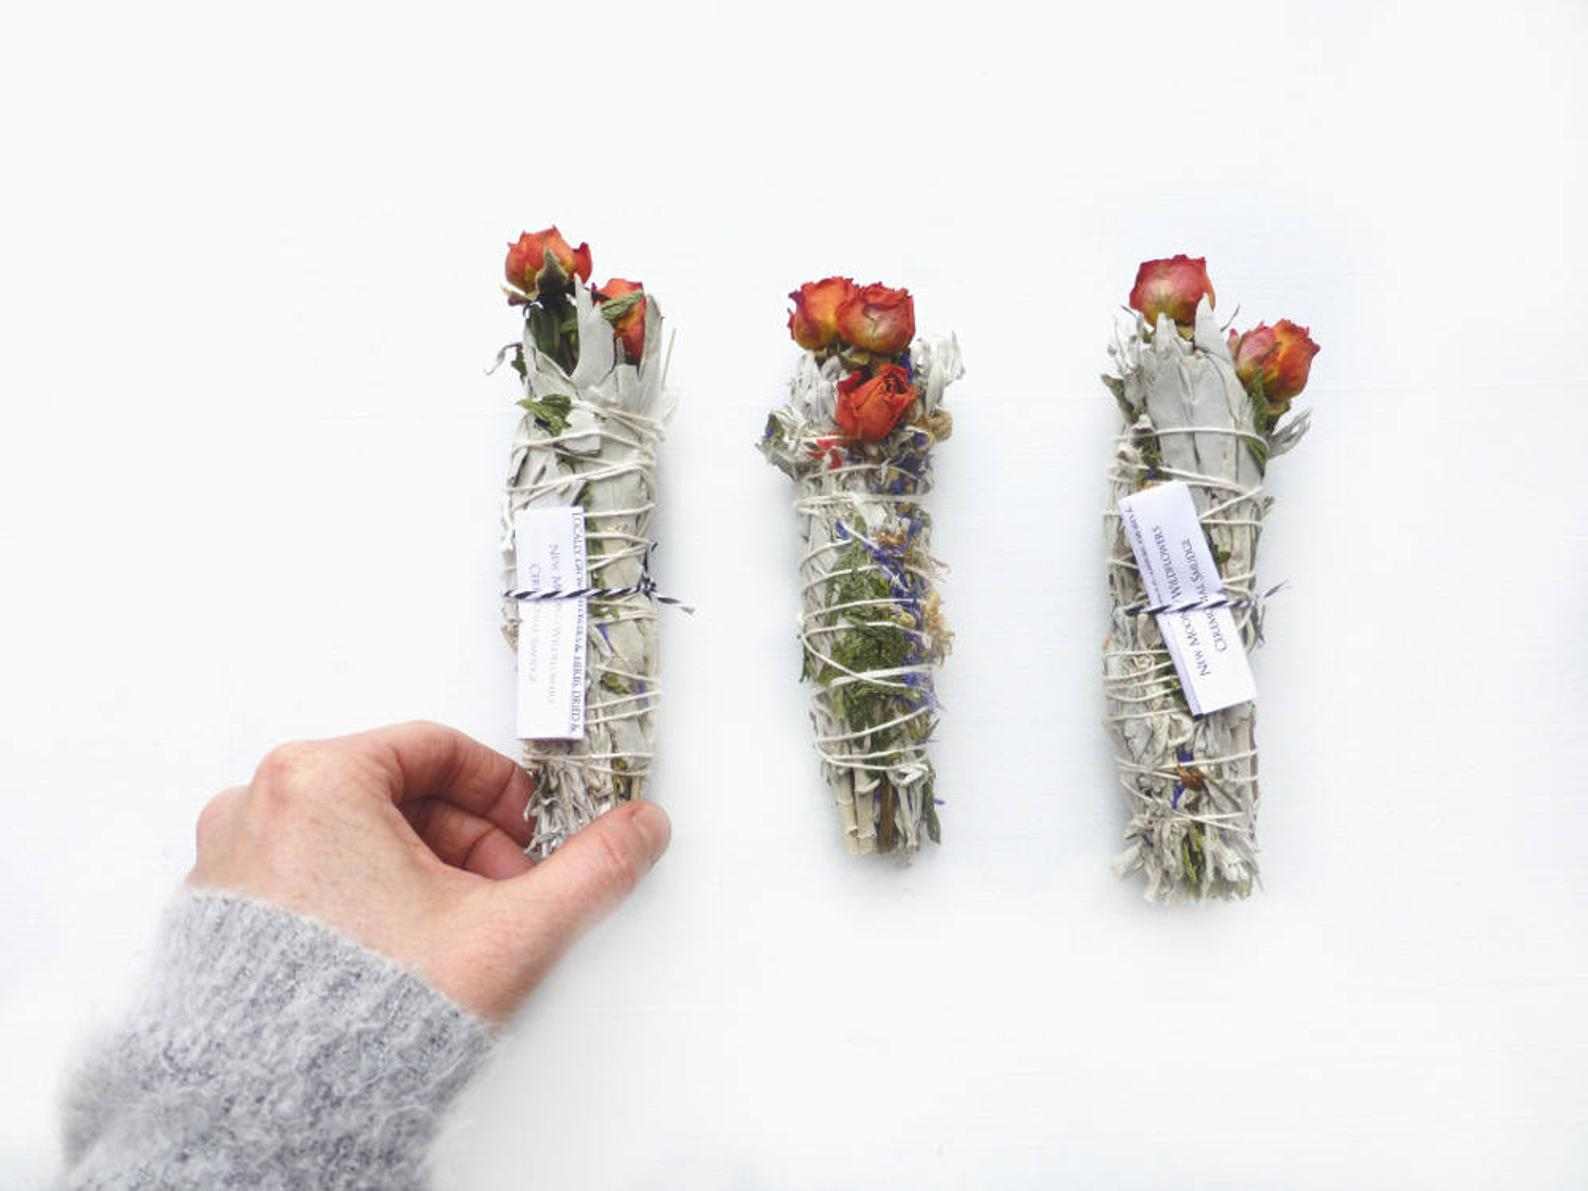 Wild-Crafted Dried Botanical Smudge Stick By Broad Street on Etsy